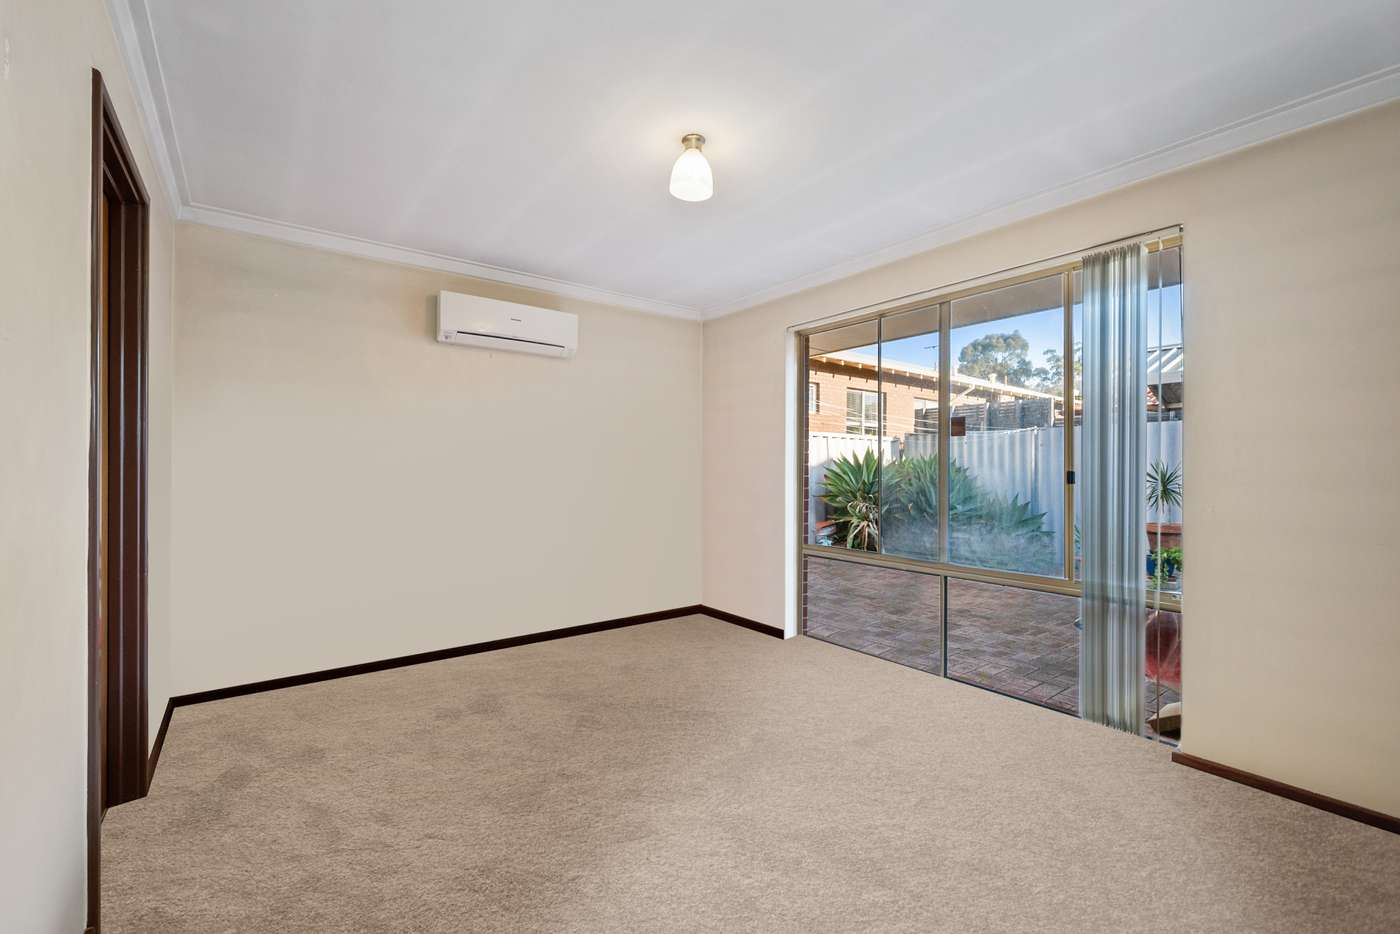 Sixth view of Homely villa listing, 2/40 Third Avenue, Mount Lawley WA 6050